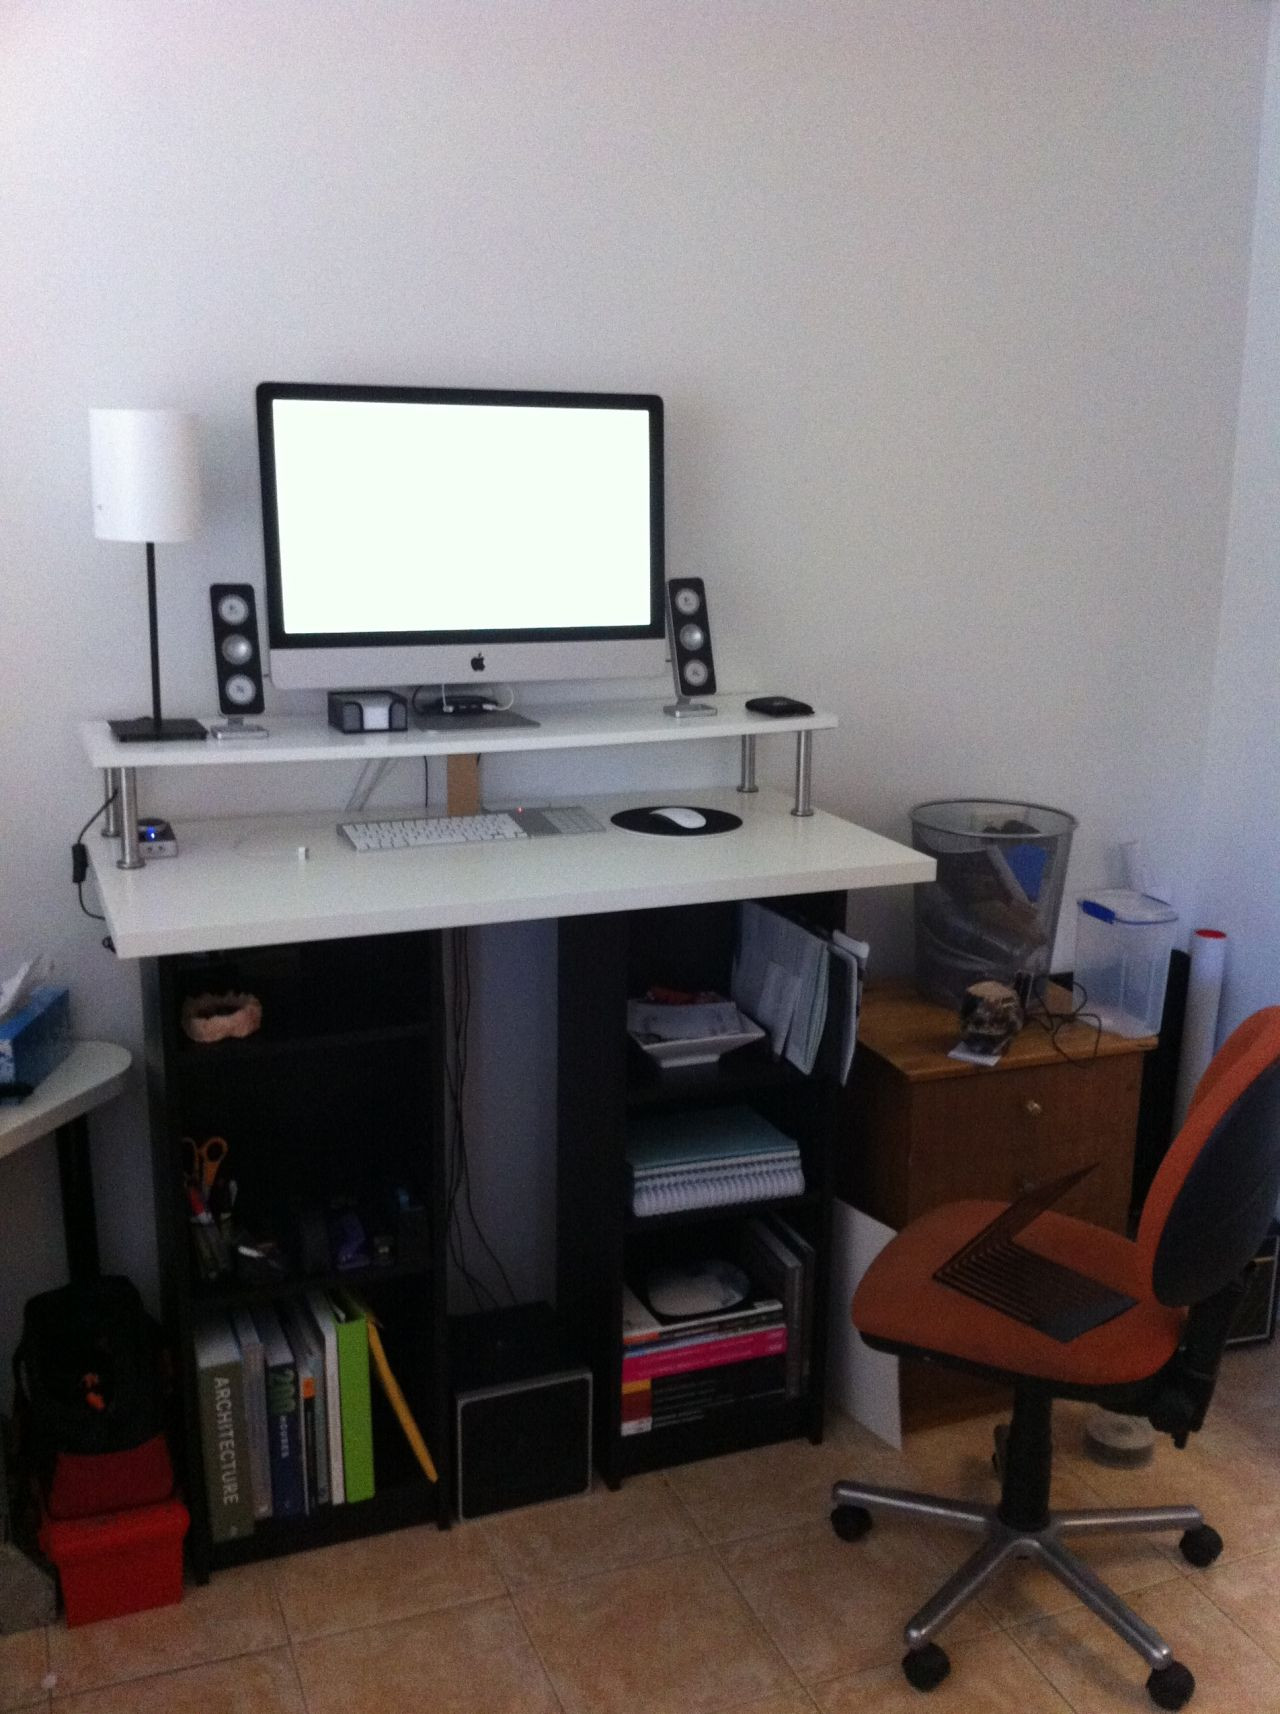 Best ideas about DIY Standing Desk Ikea . Save or Pin Top 10 Most Popular IKEA Hacks Ever Now.